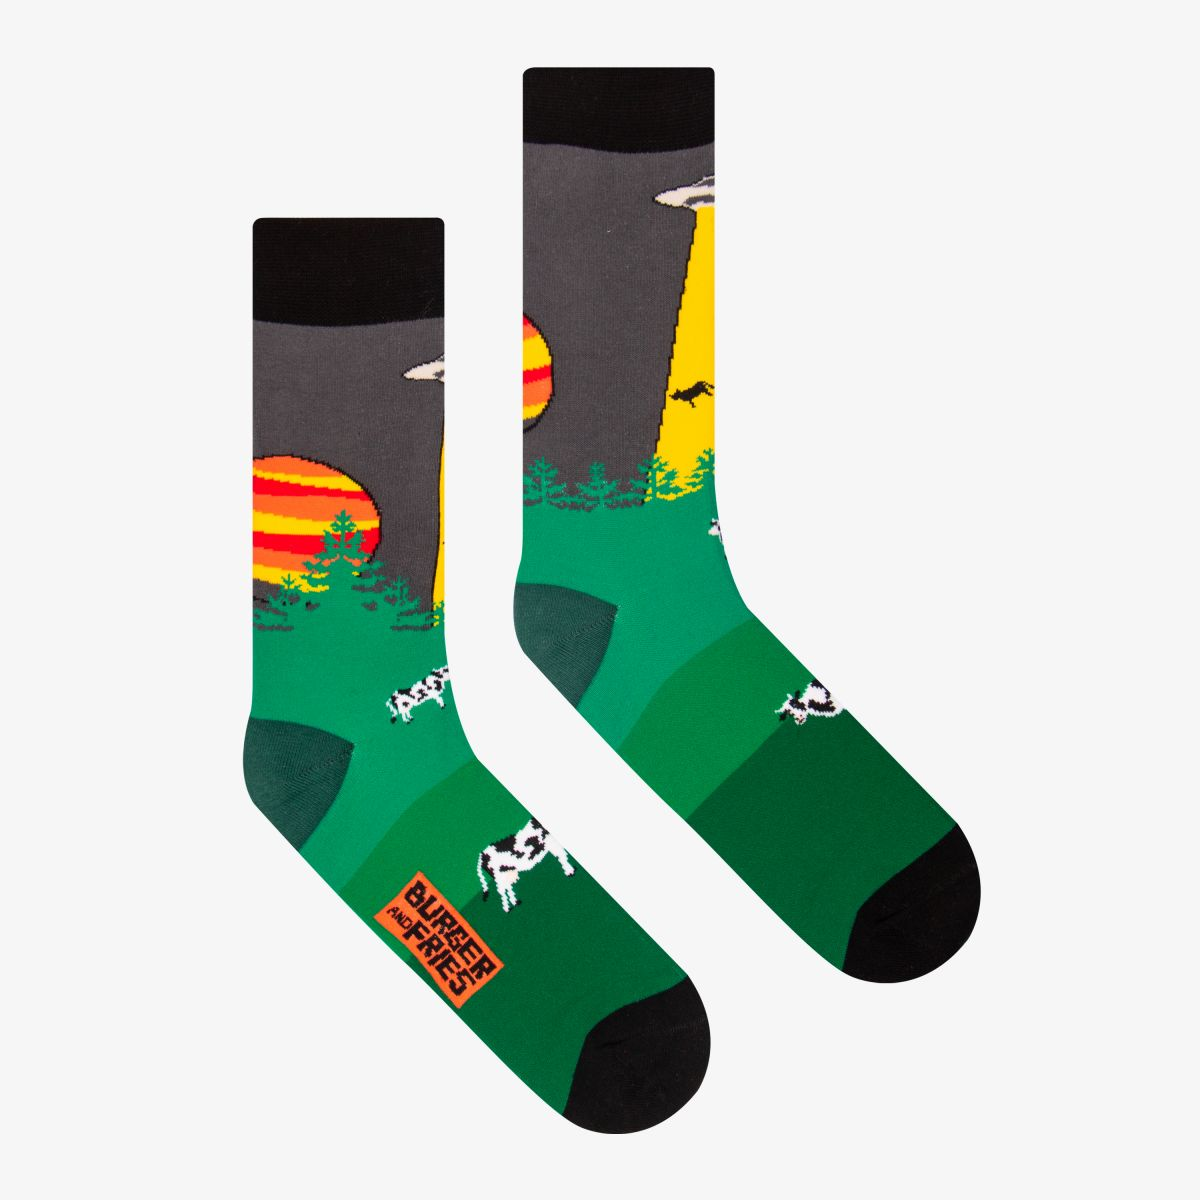 SPACE SOCKS BELIEVE OR NOT BELIEVE